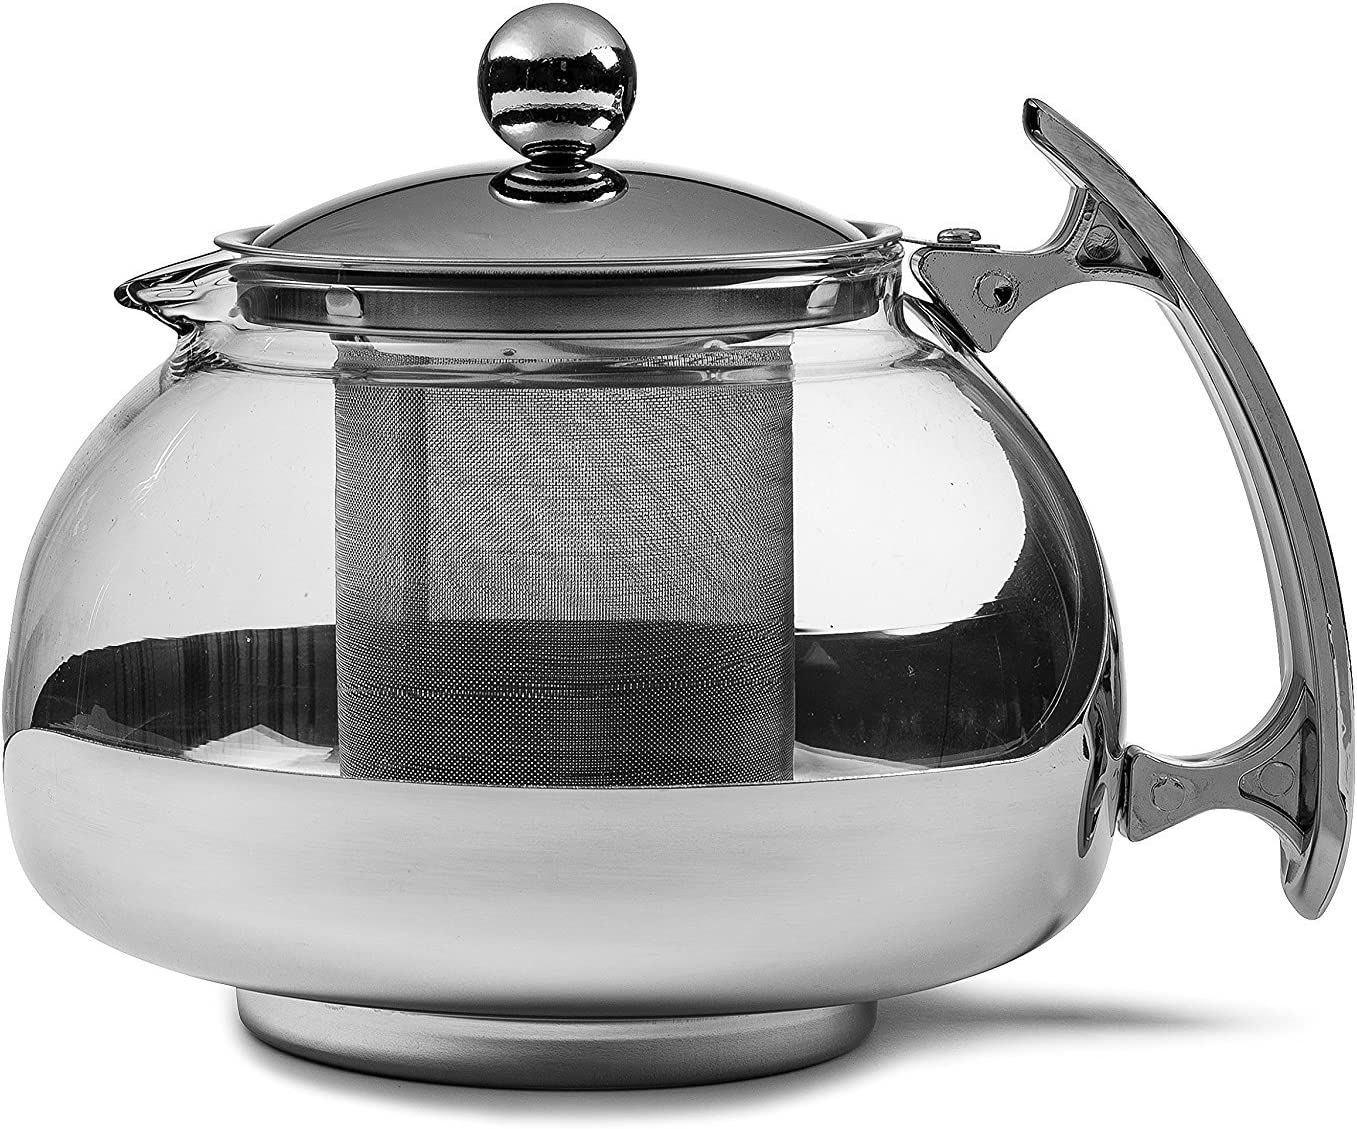 Chef's Star Premium Glass Tea Pot & Infuser - Stainless Steel, 16 oz by Chefs Star®